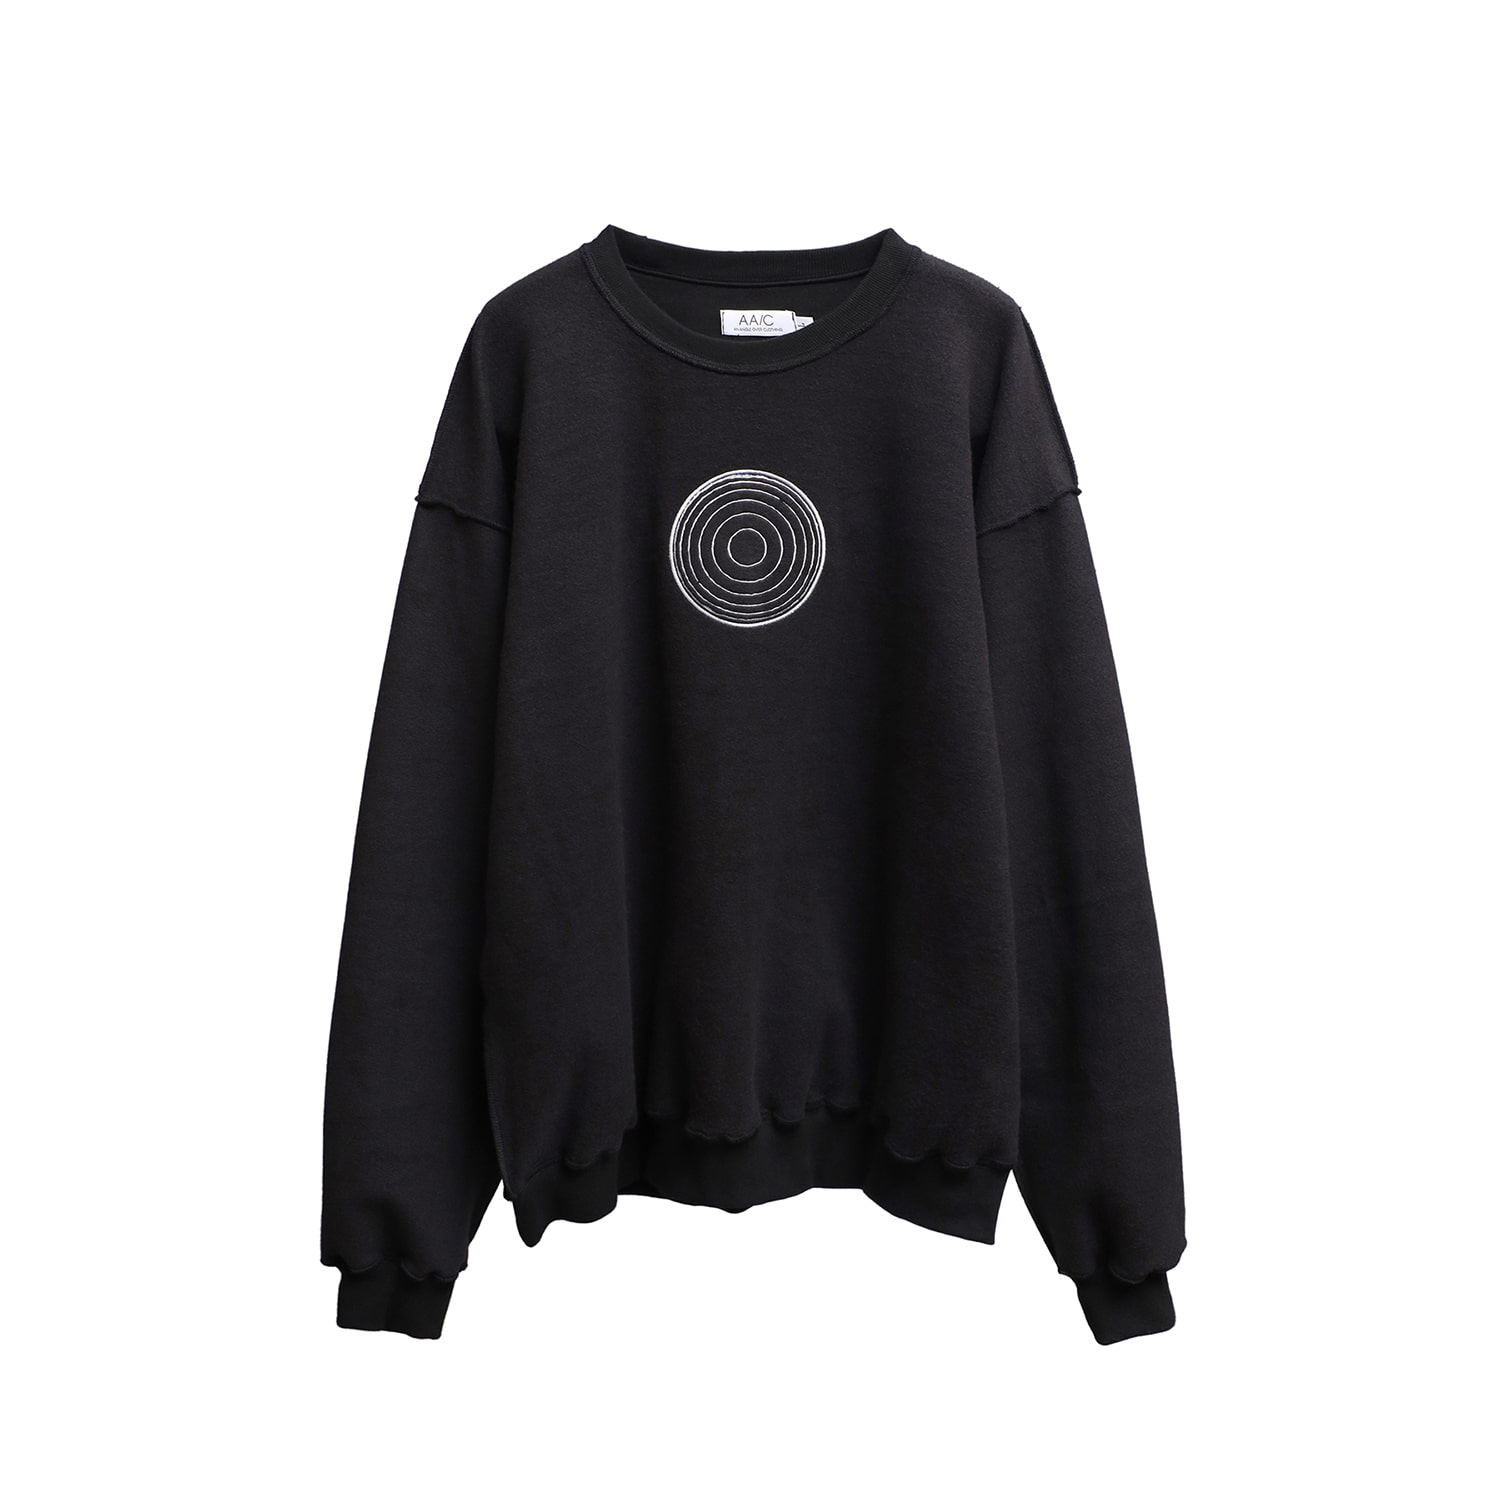 S.S.C Reversible Sweatshirt (black)